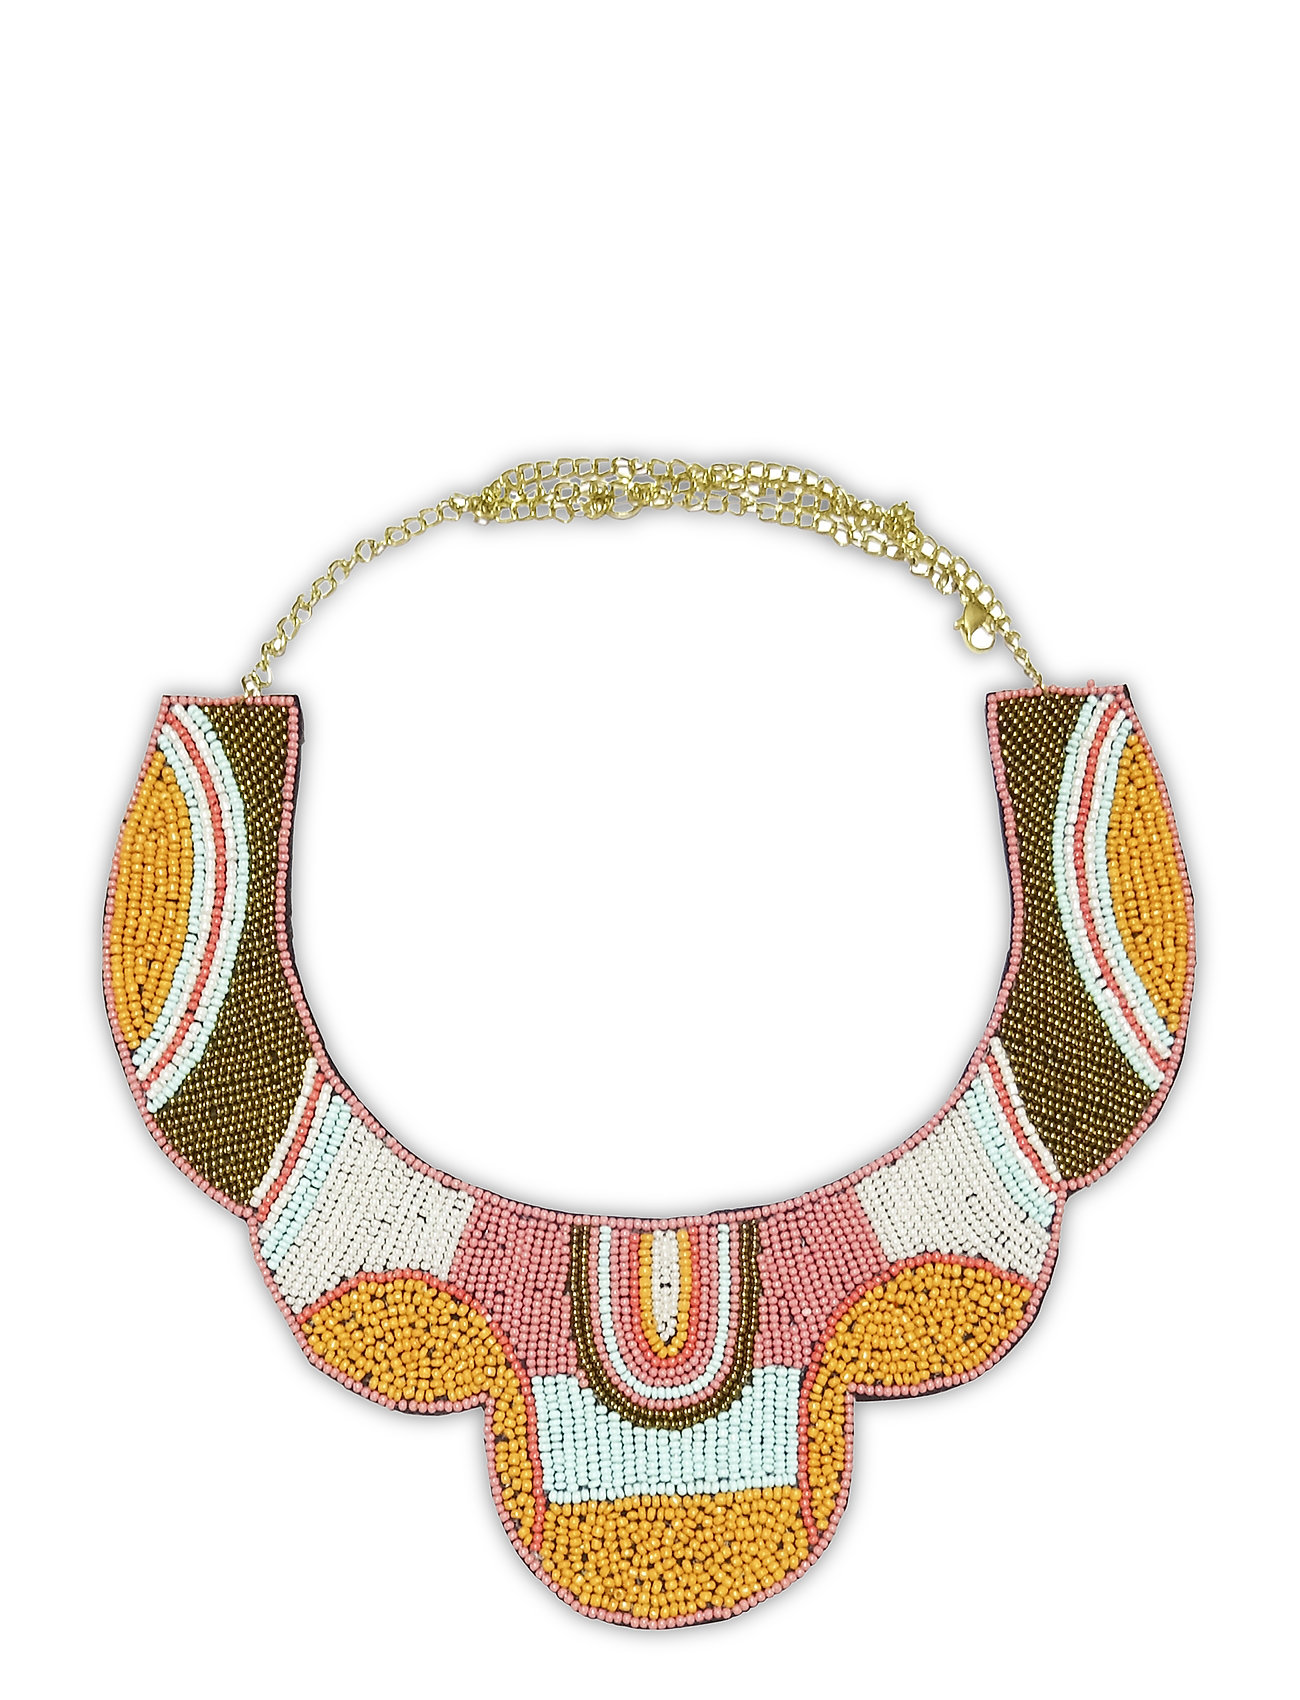 Image of Totem Necklace Multi Orange Accessories Jewellery Necklaces Statement Necklaces Orange PIPOL'S BAZAAR (3454501253)